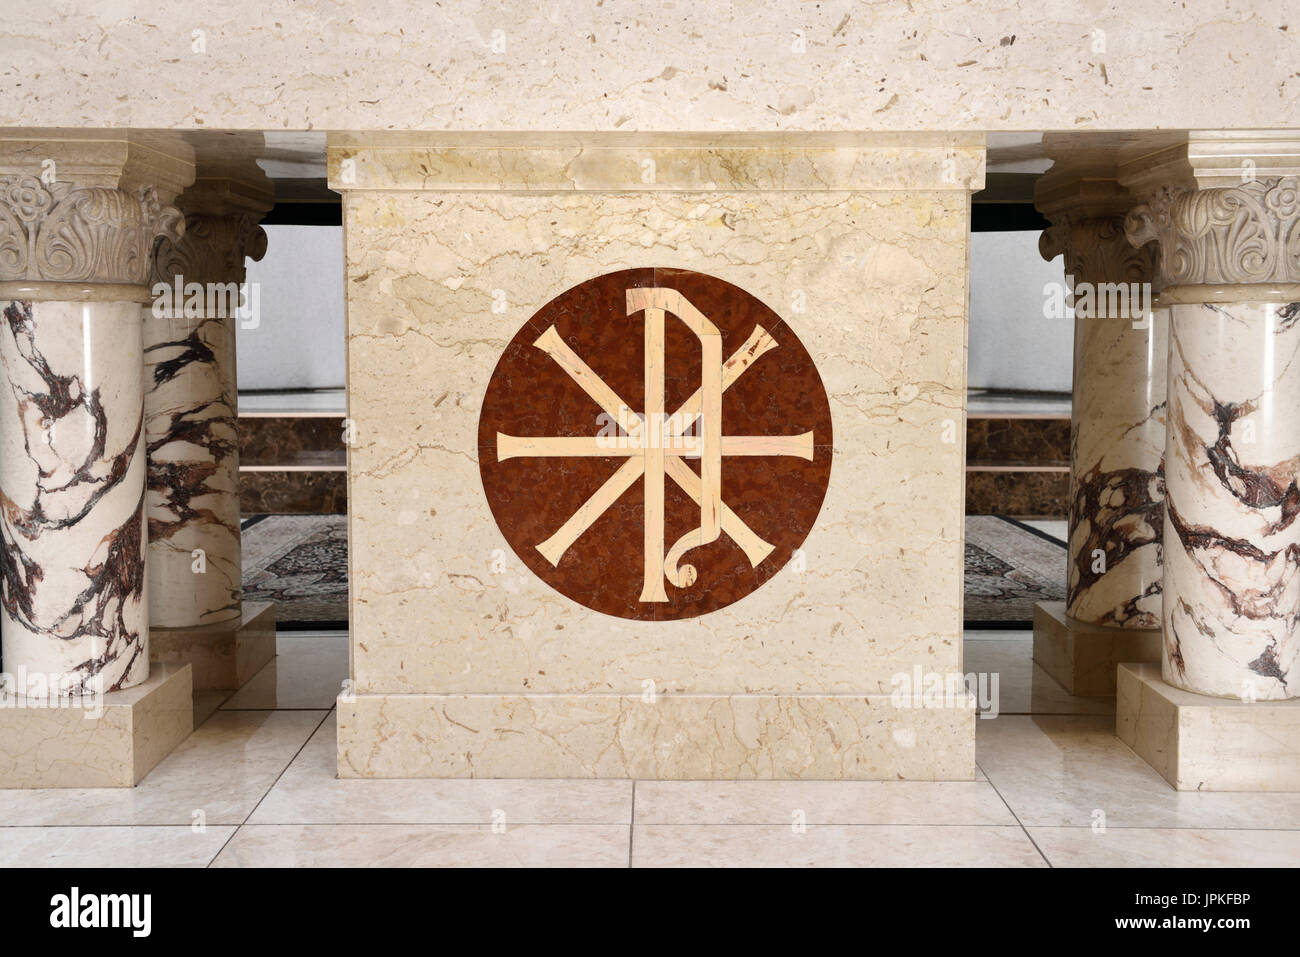 Chi rho stock photos chi rho stock images alamy christian chi rho symbol for first two greek letters of christ inlaid on the marble altar buycottarizona Images